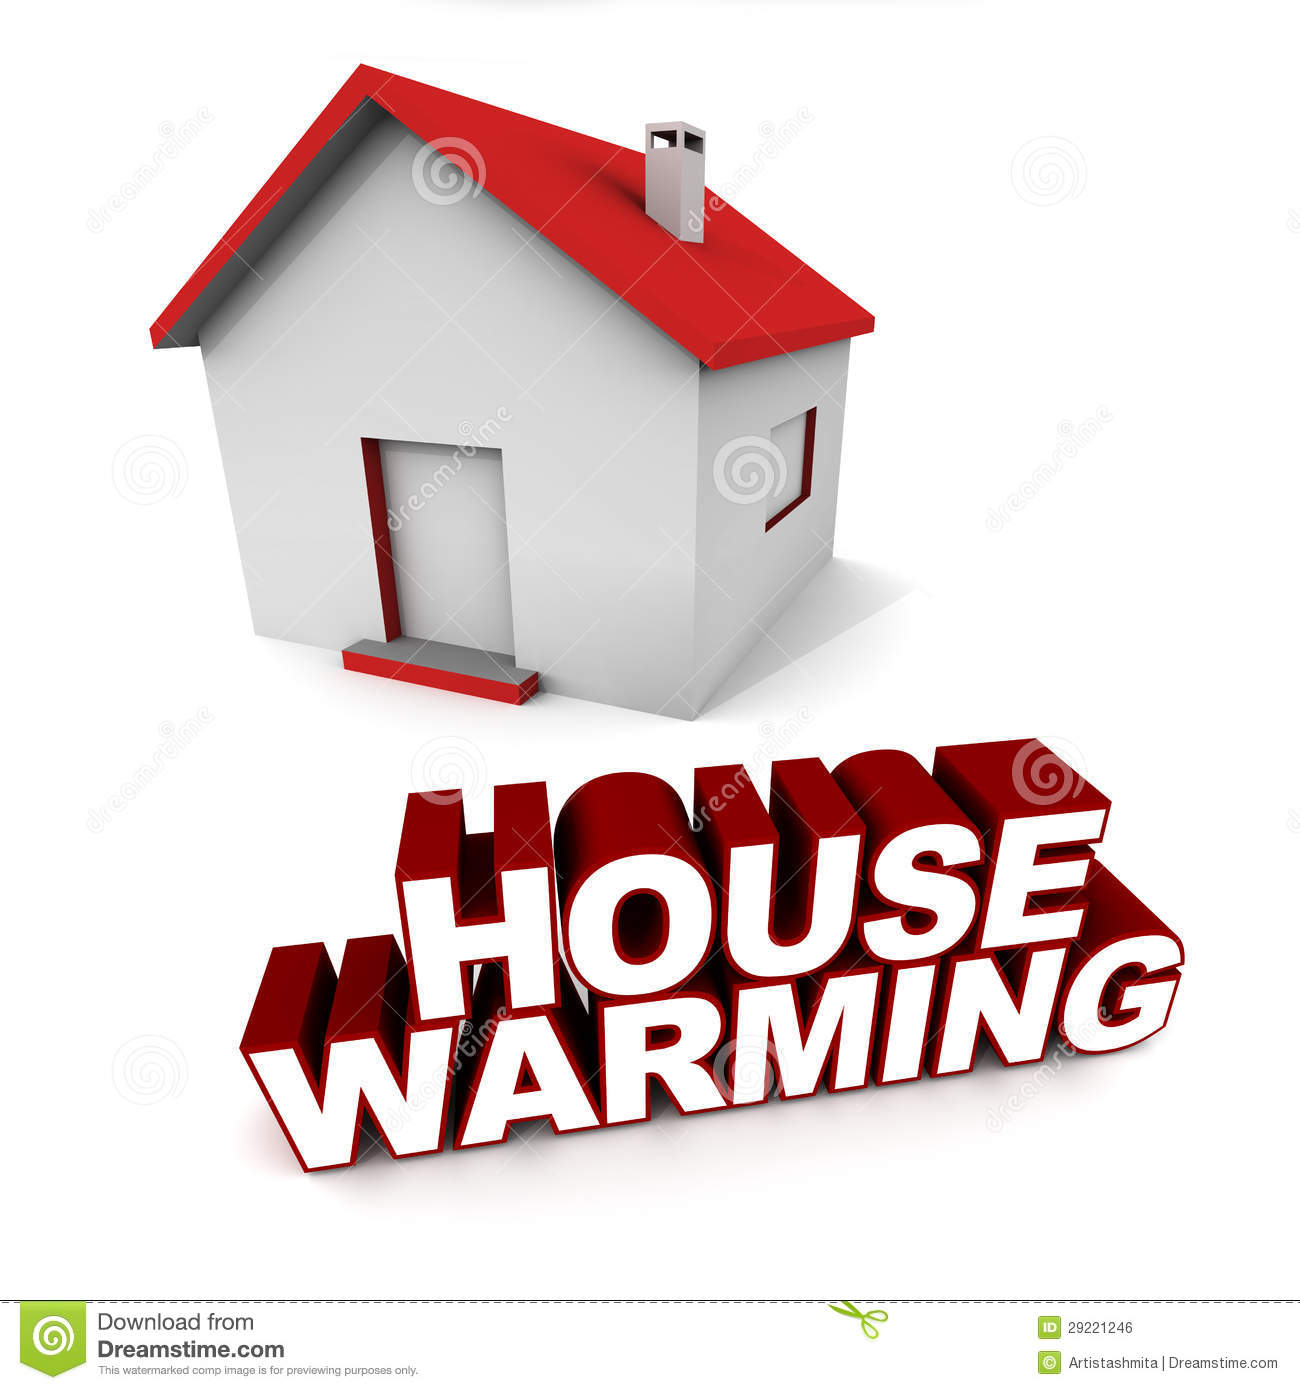 House warming stock illustration image of house real What is house warming